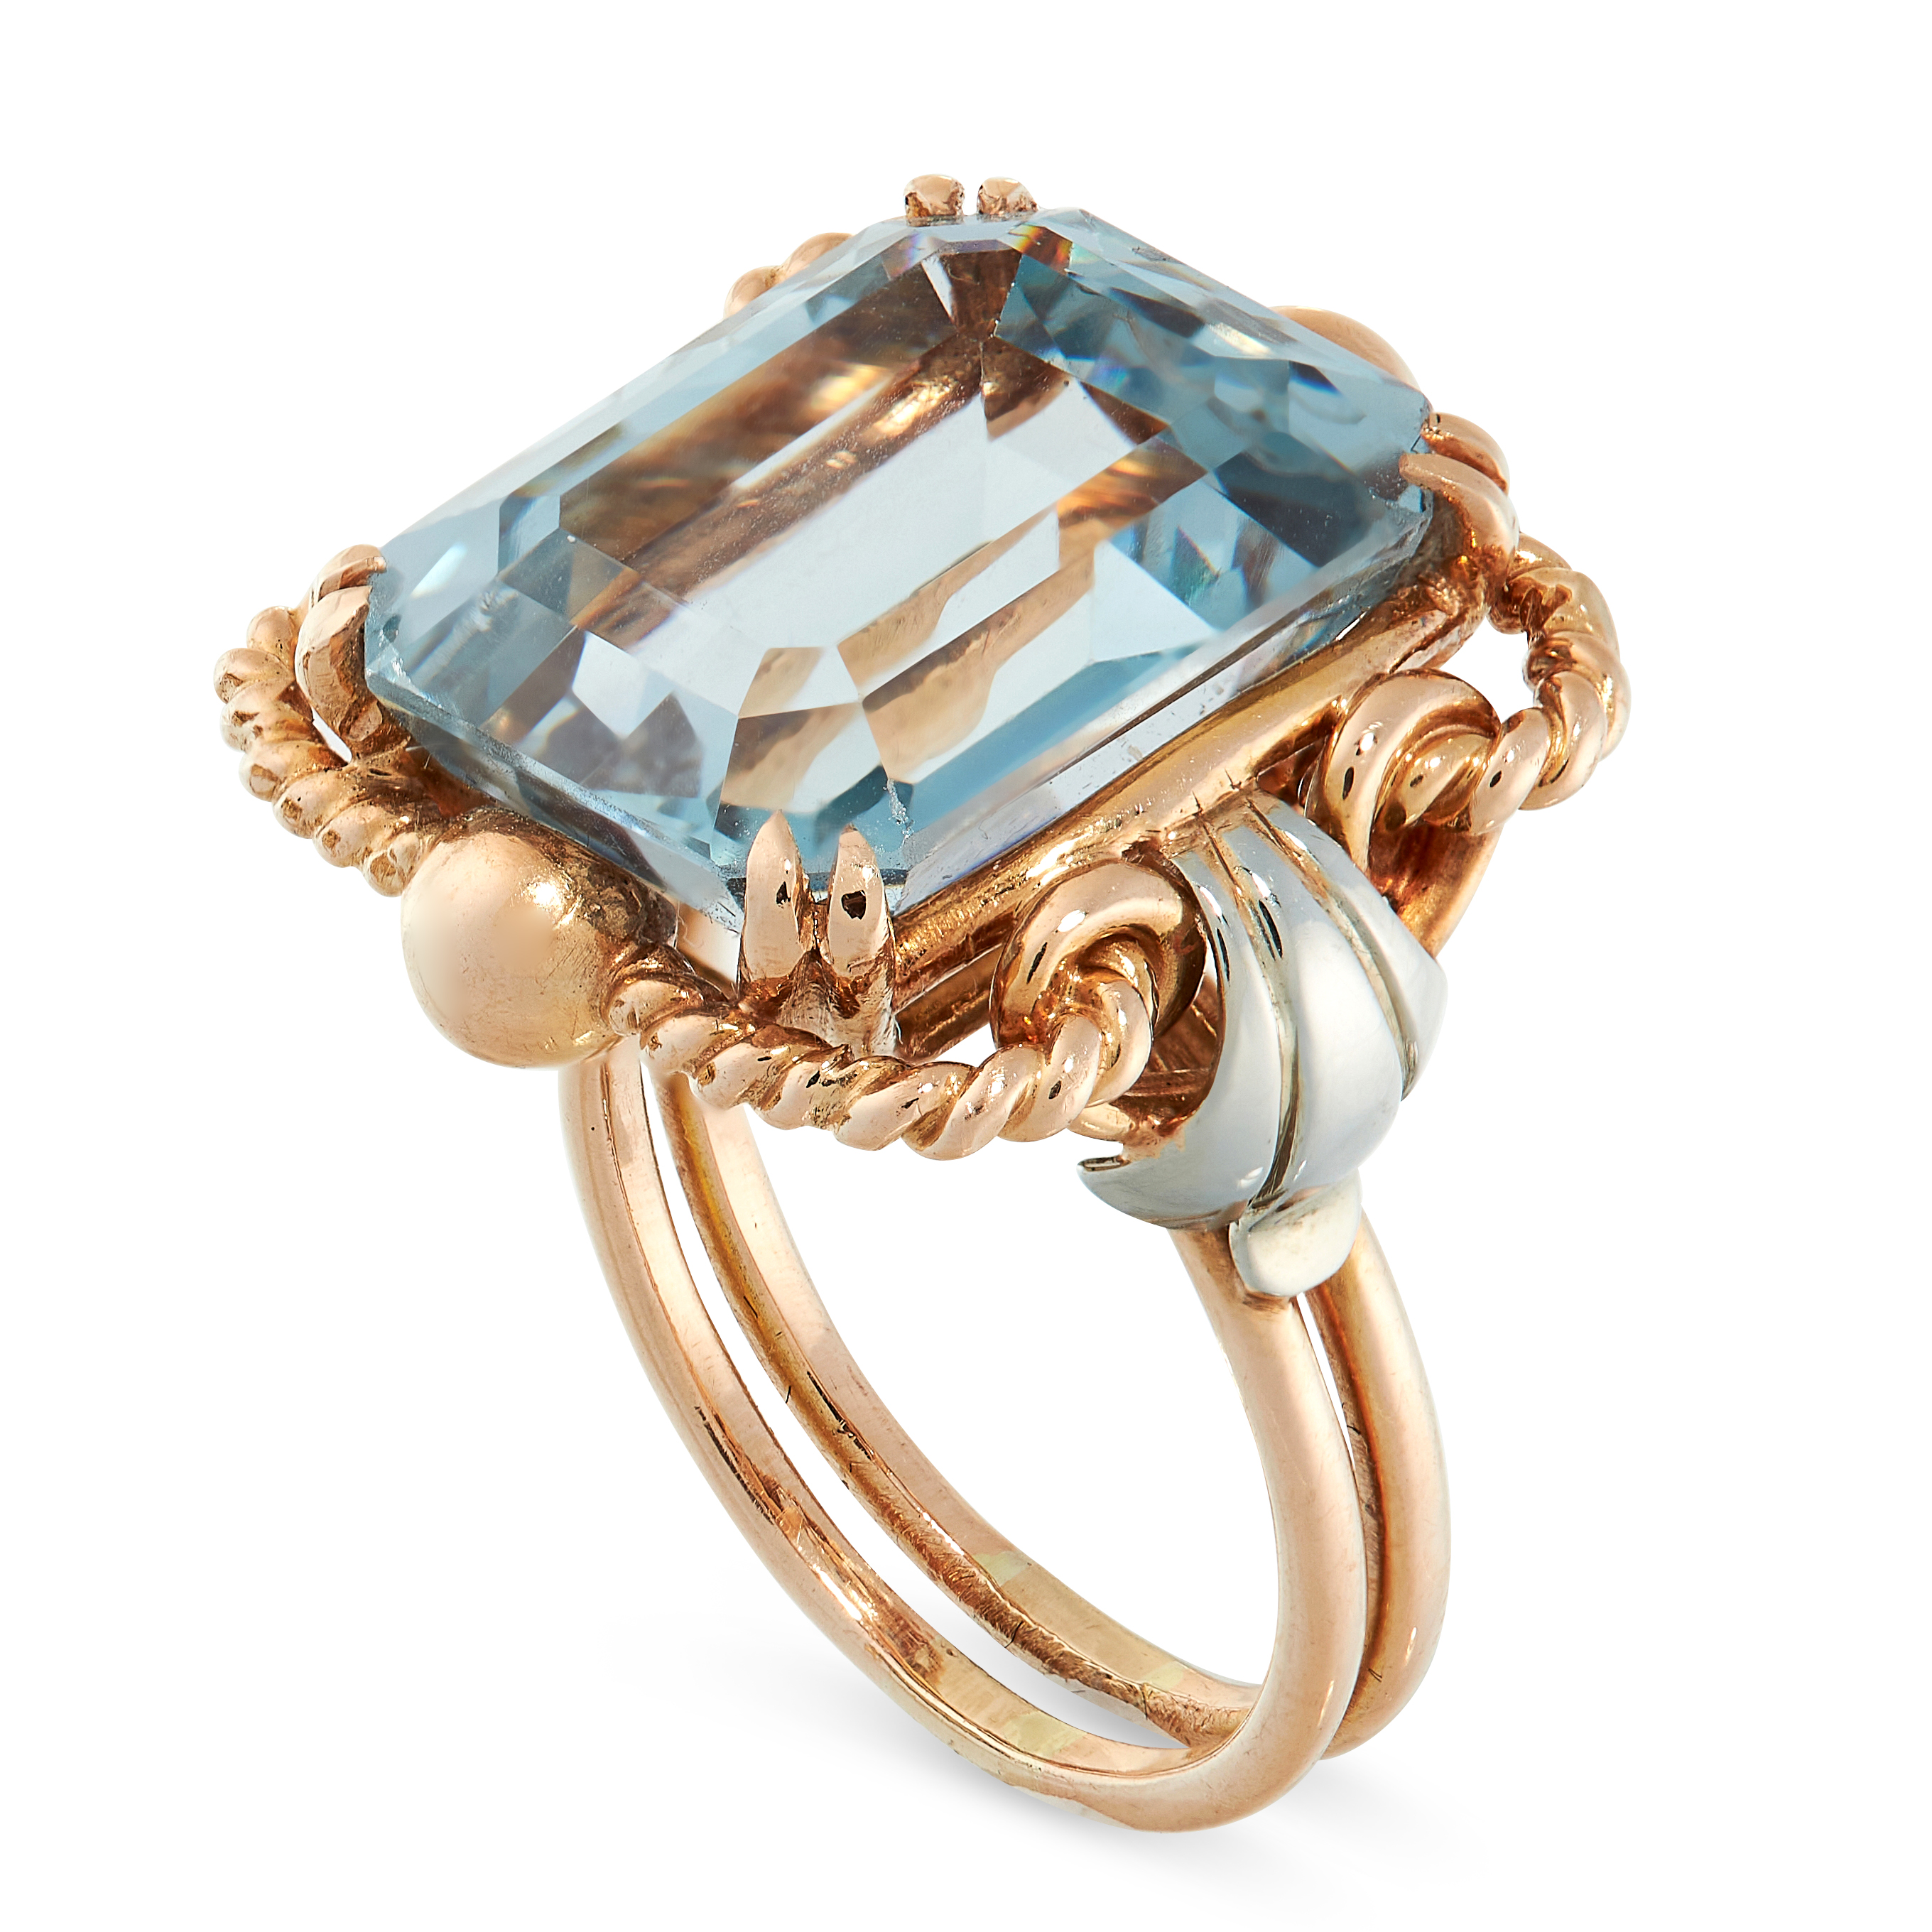 RETRO BLUE GEMSTONE RING comprising of an emerald cut blue gemstones of 13.62 carats in two-tone - Image 2 of 2